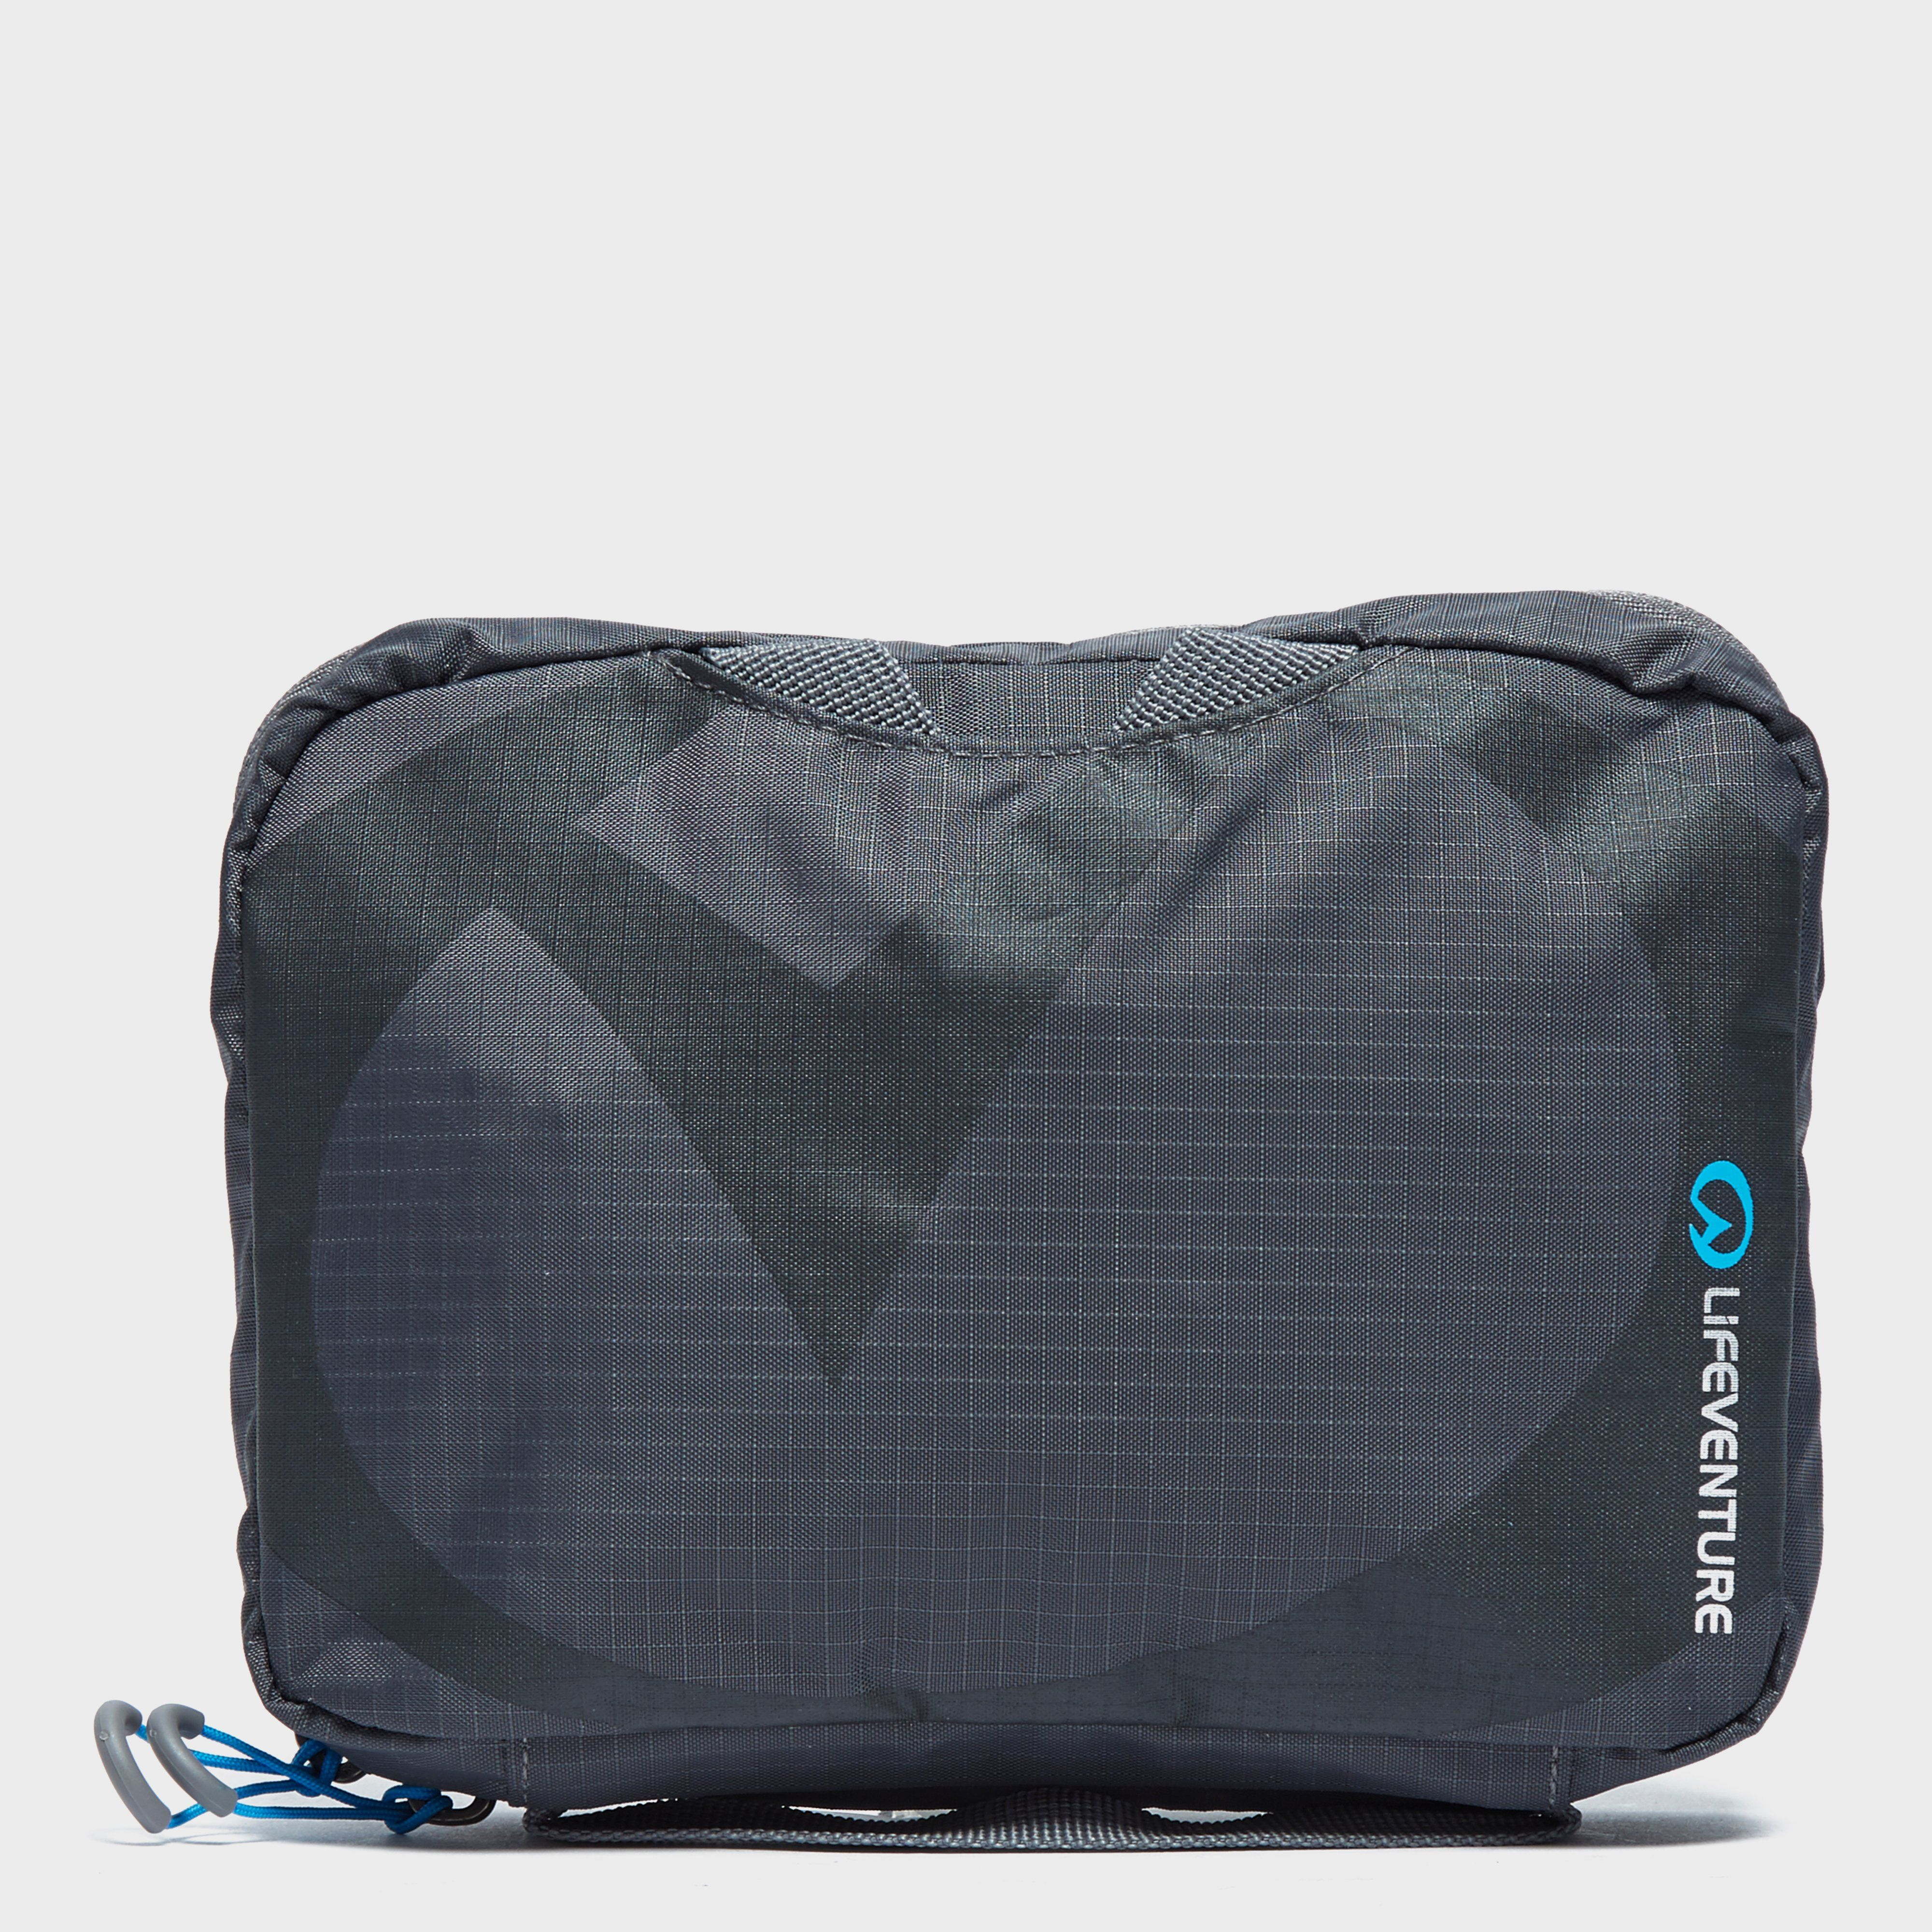 LIFEVENTURE Travel Wash Bag (Small)